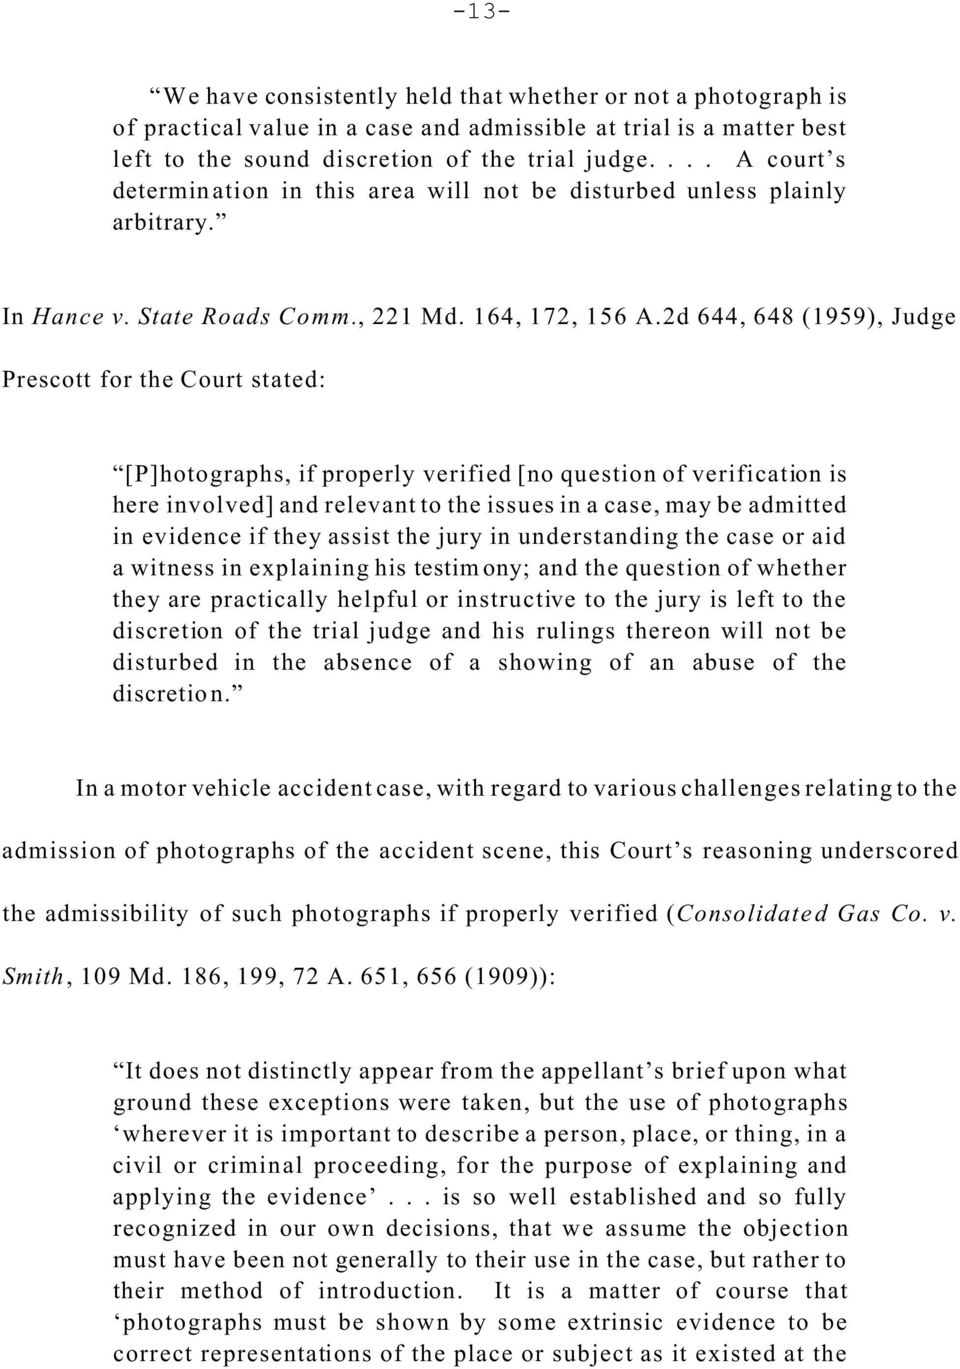 2d 644, 648 (1959), Judge Prescott for the Court stated: [P]hotographs, if properly verified [no question of verification is here involved] and relevant to the issues in a case, may be admitted in